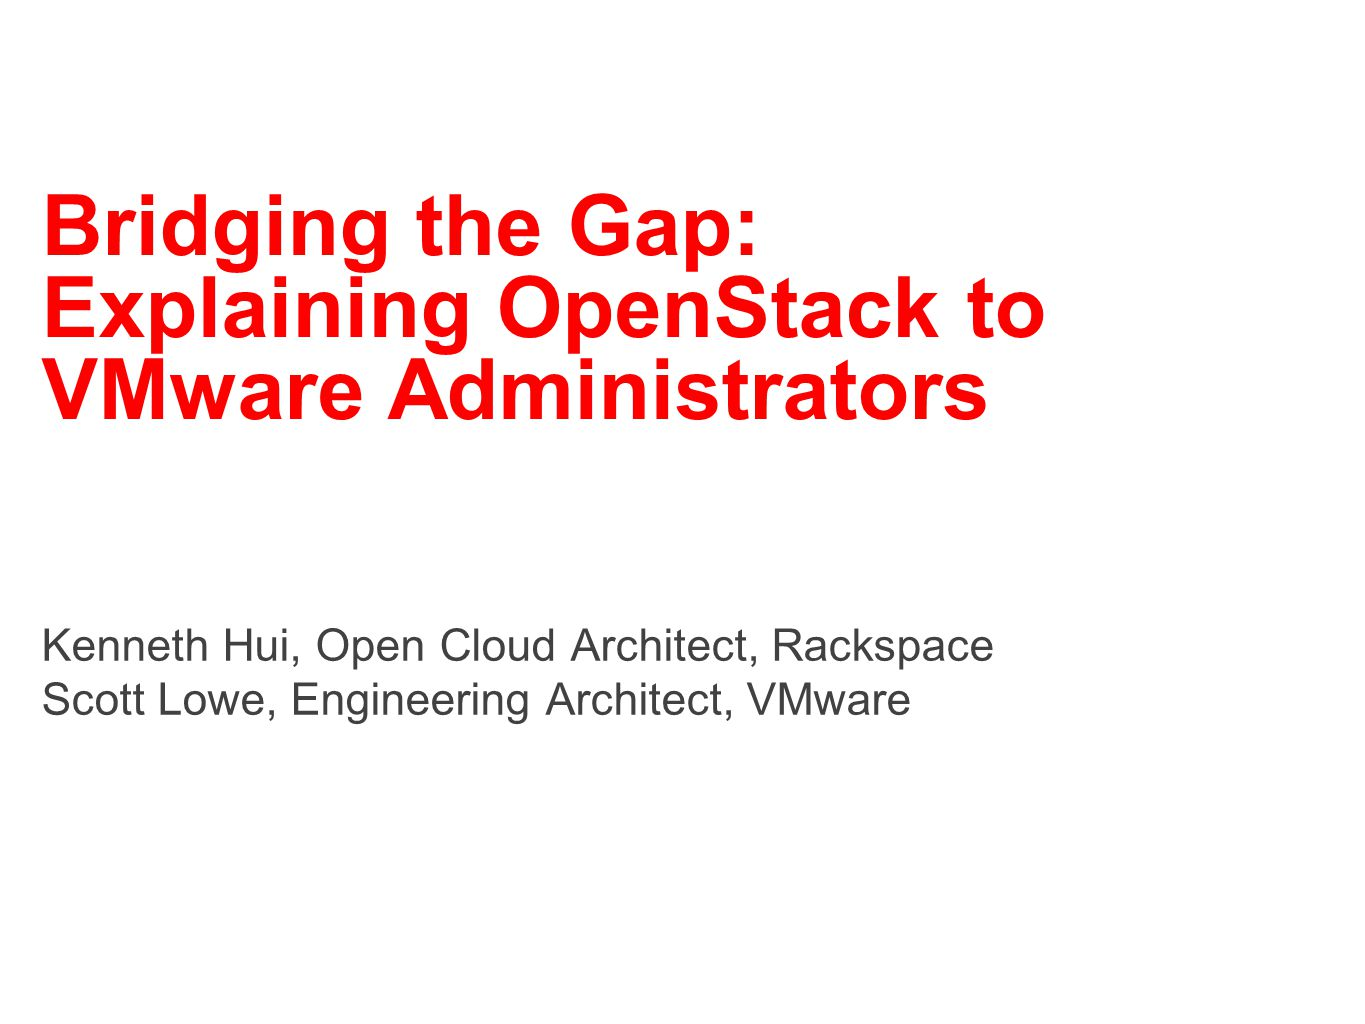 Bridging the Gap: Explaining OpenStack to VMware Administrators Kenneth Hui, Open Cloud Architect, Rackspace Scott Lowe, Engineering Architect, VMware